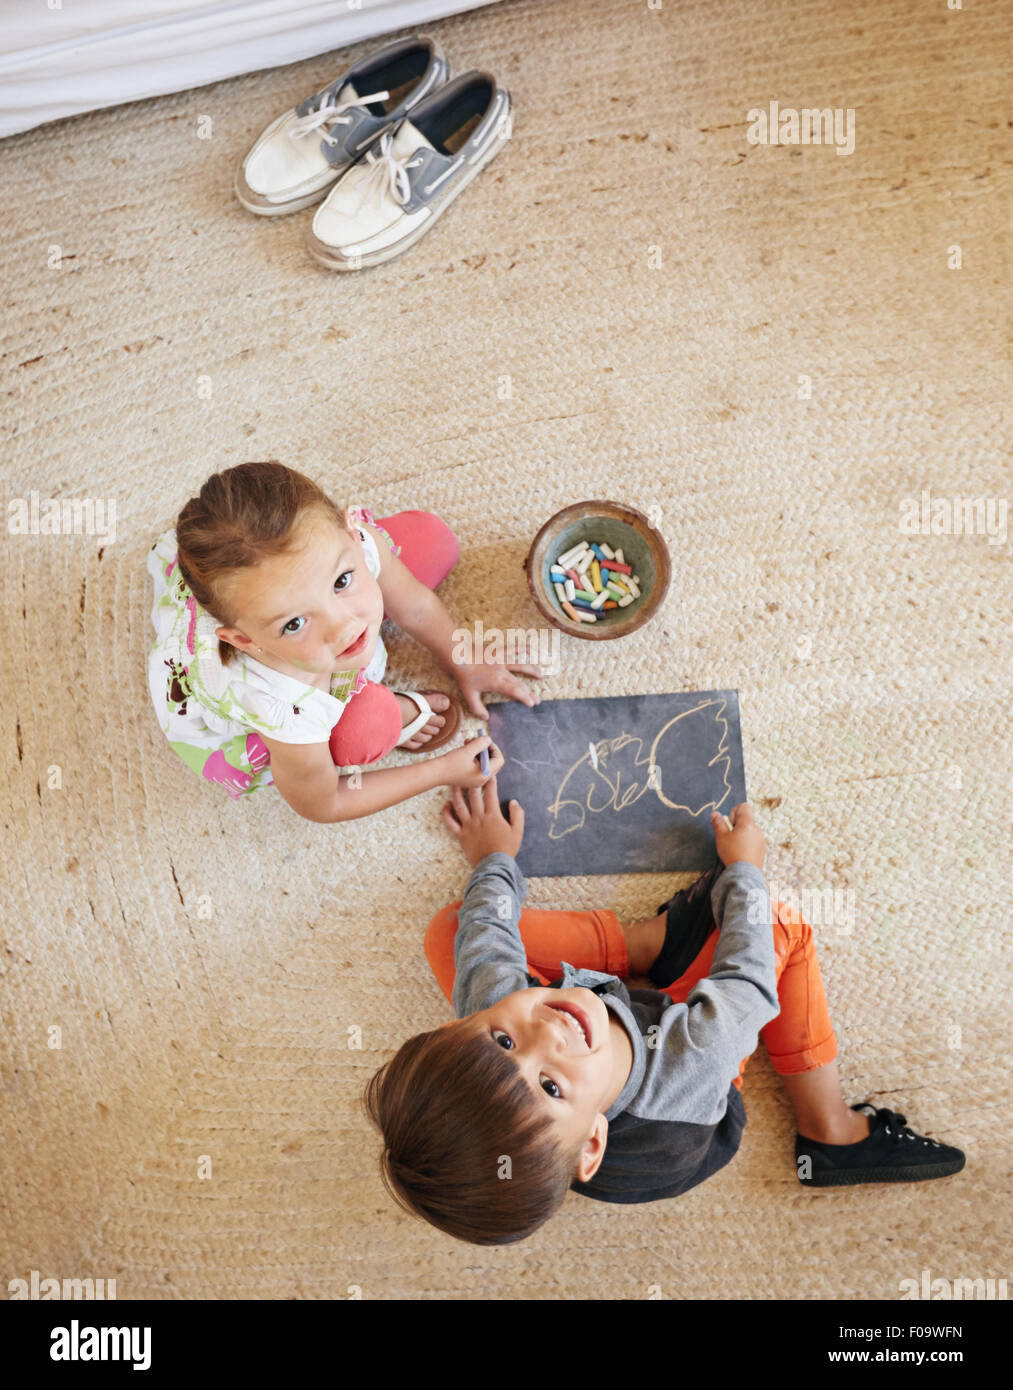 Top view of two little kids sitting on floor looking up at camera while drawing. - Stock Image